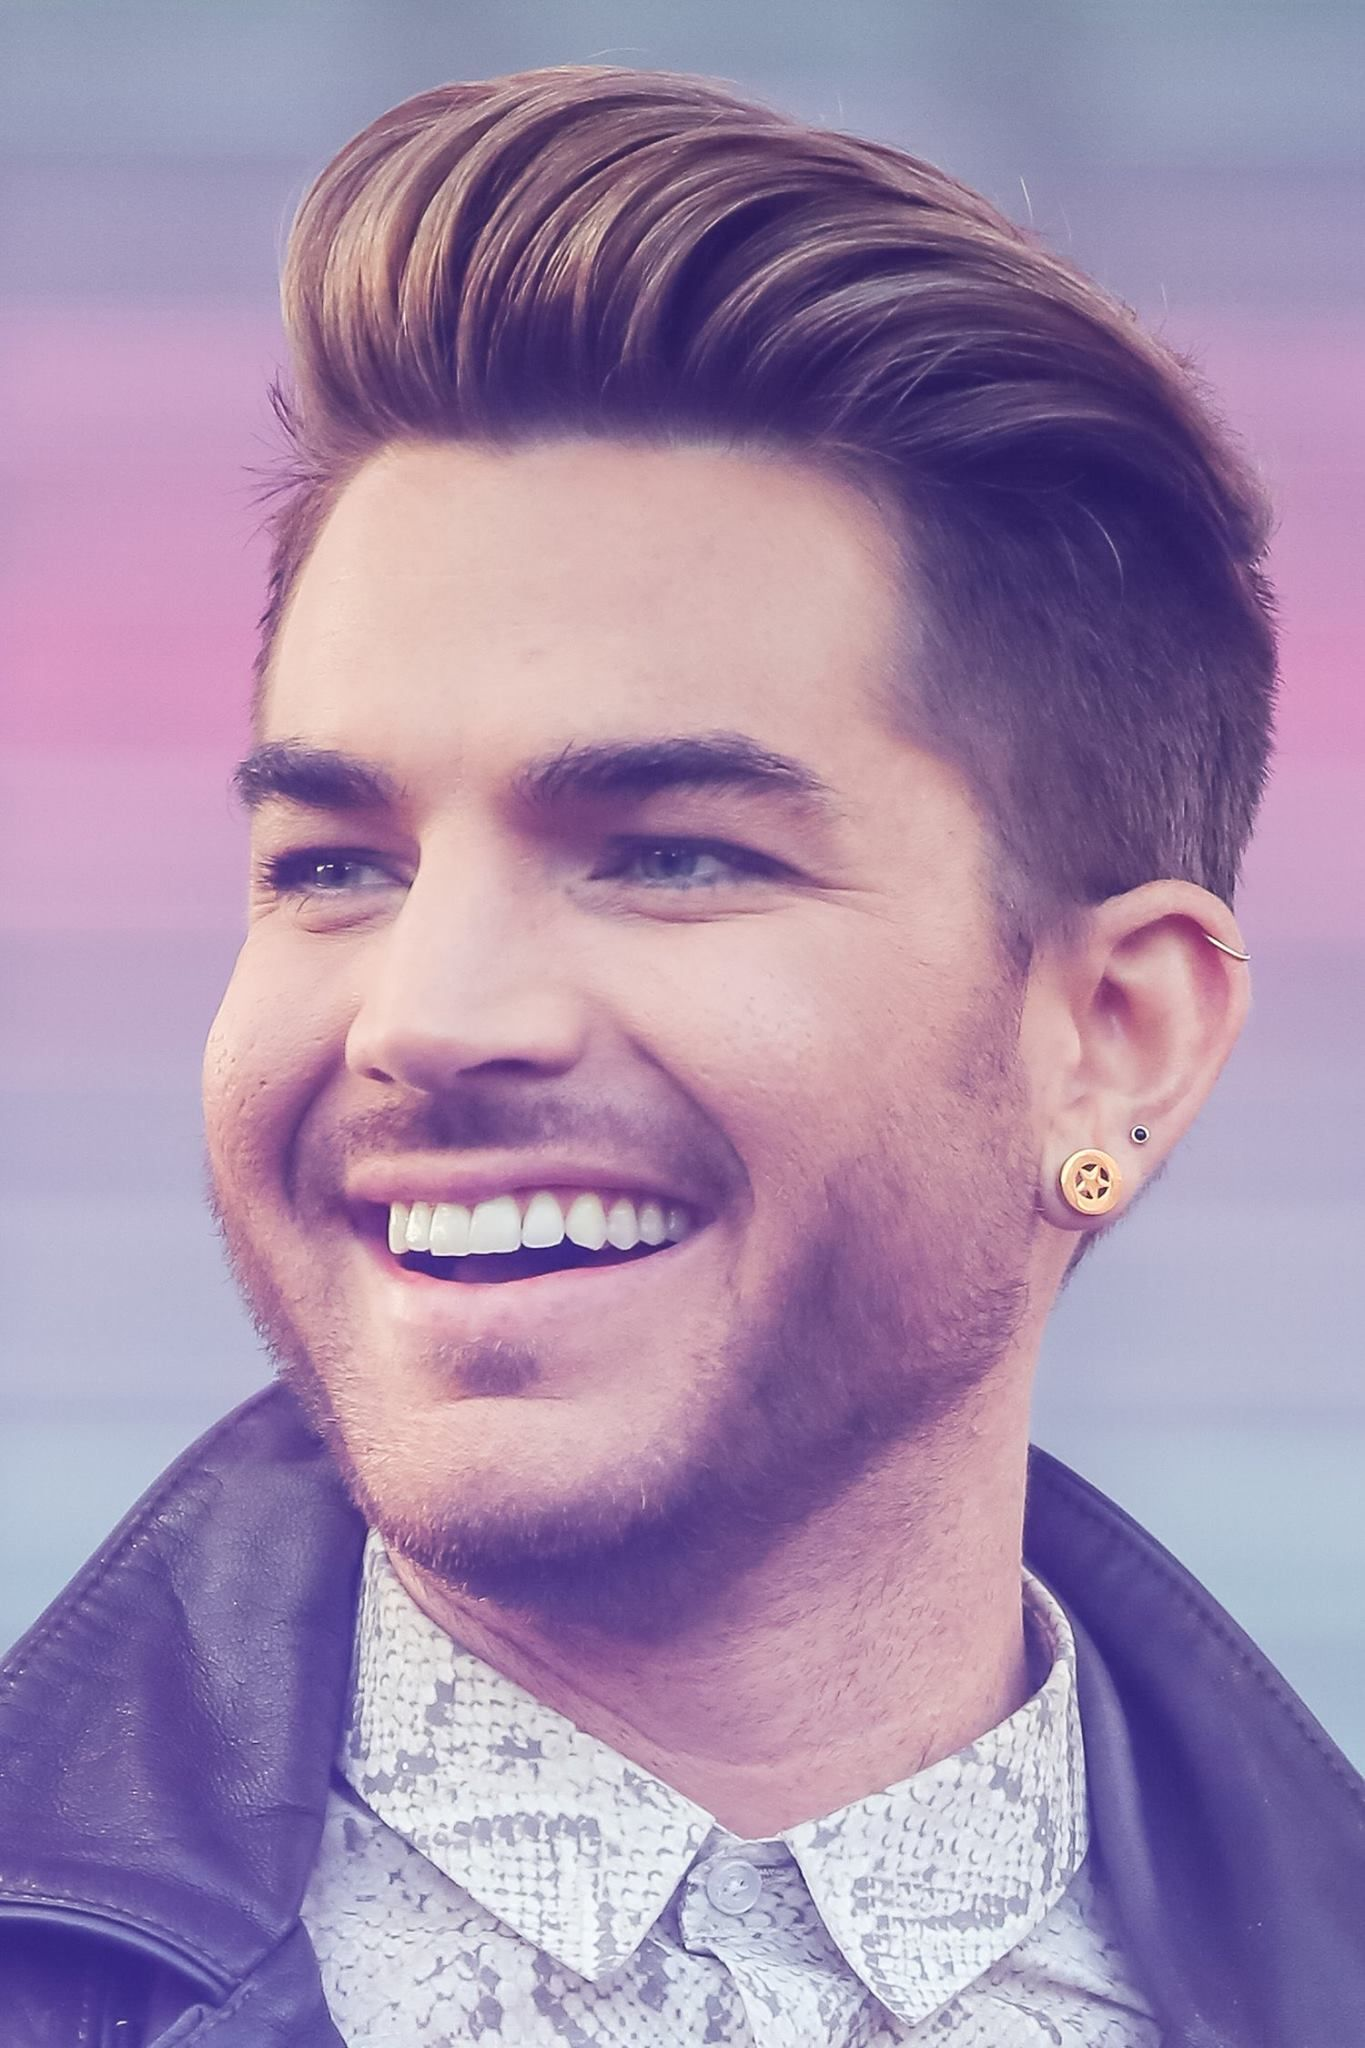 Pin by pavla holčáková on adam lambert pinterest adam lambert